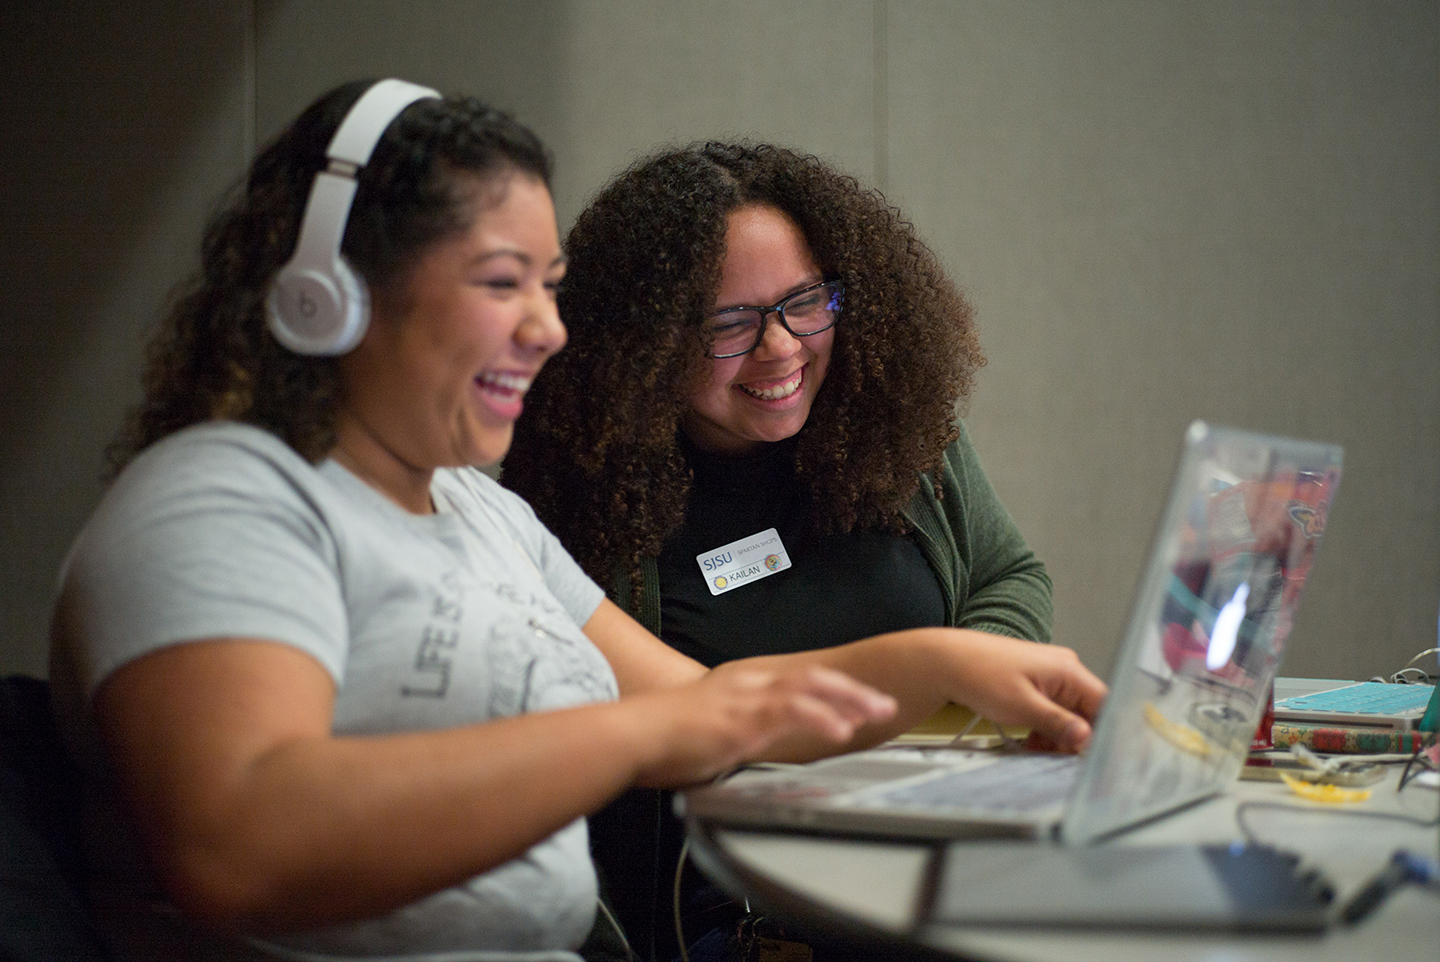 SJSU and Adobe co-hosted Adobe CreativeJam, where graphic design students learn from design professionals and compete in a tournament. (Photo: James Tensuan, '15 Journalism)